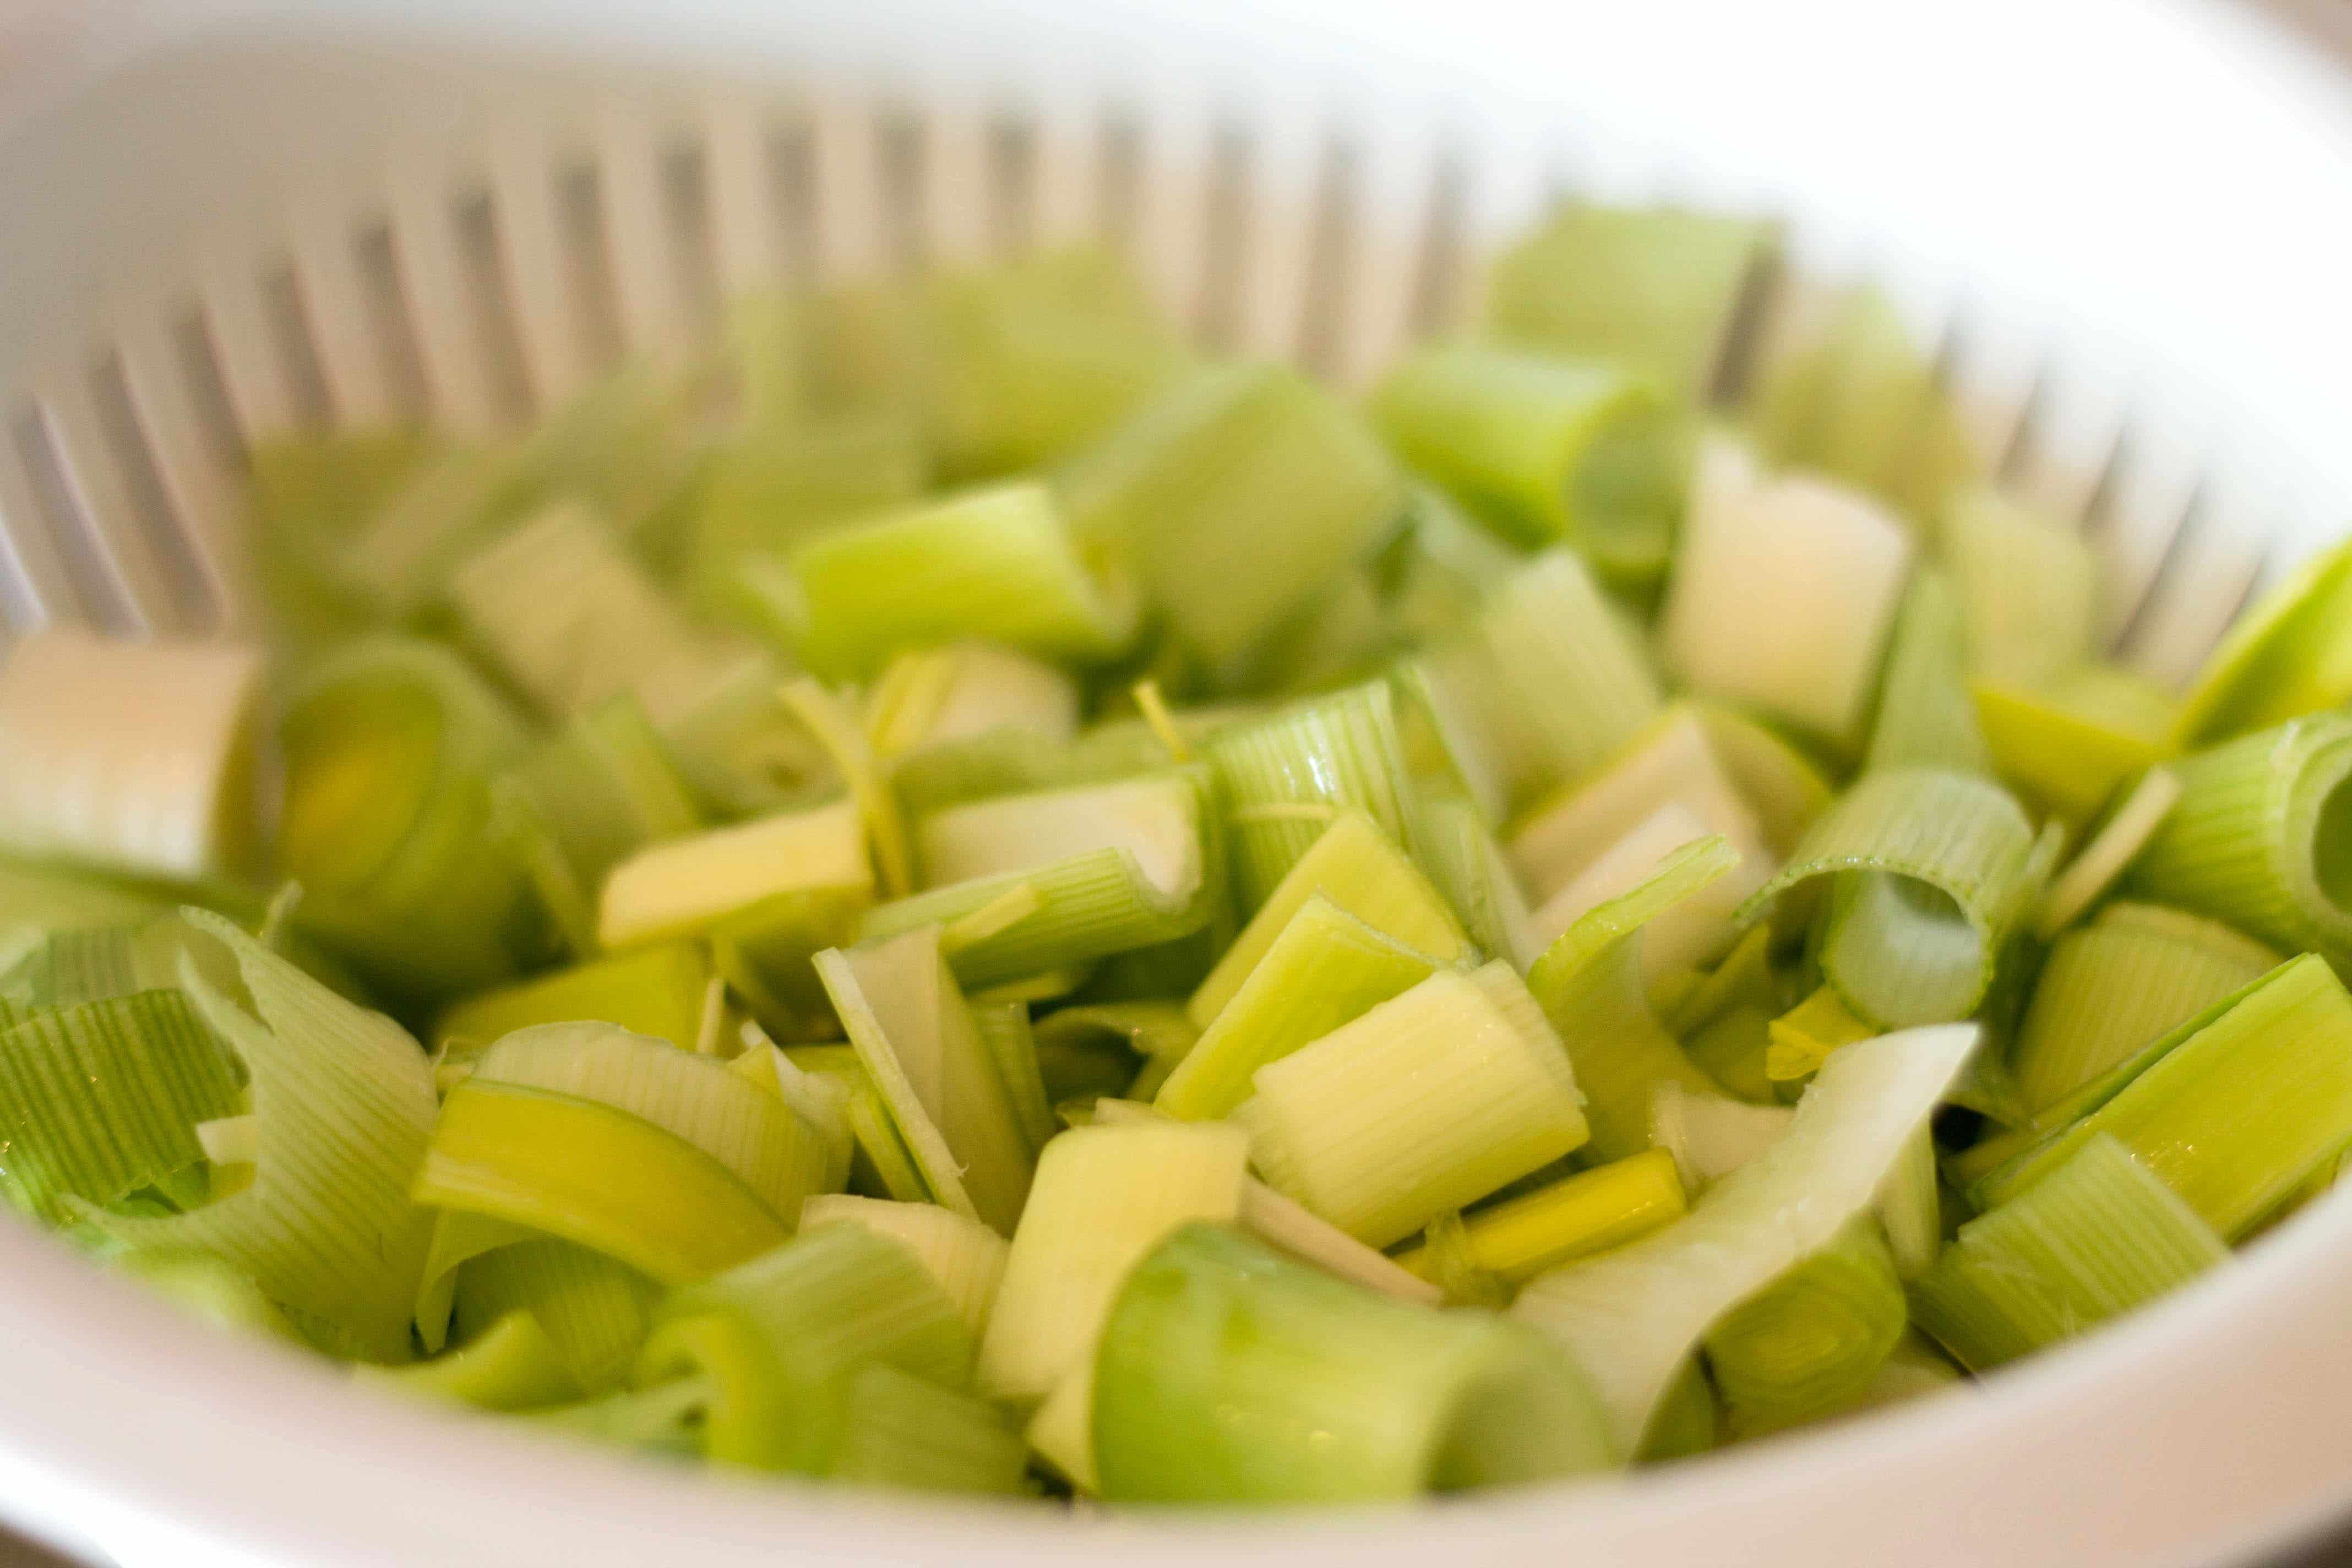 sliced and washed leek draining in a colander